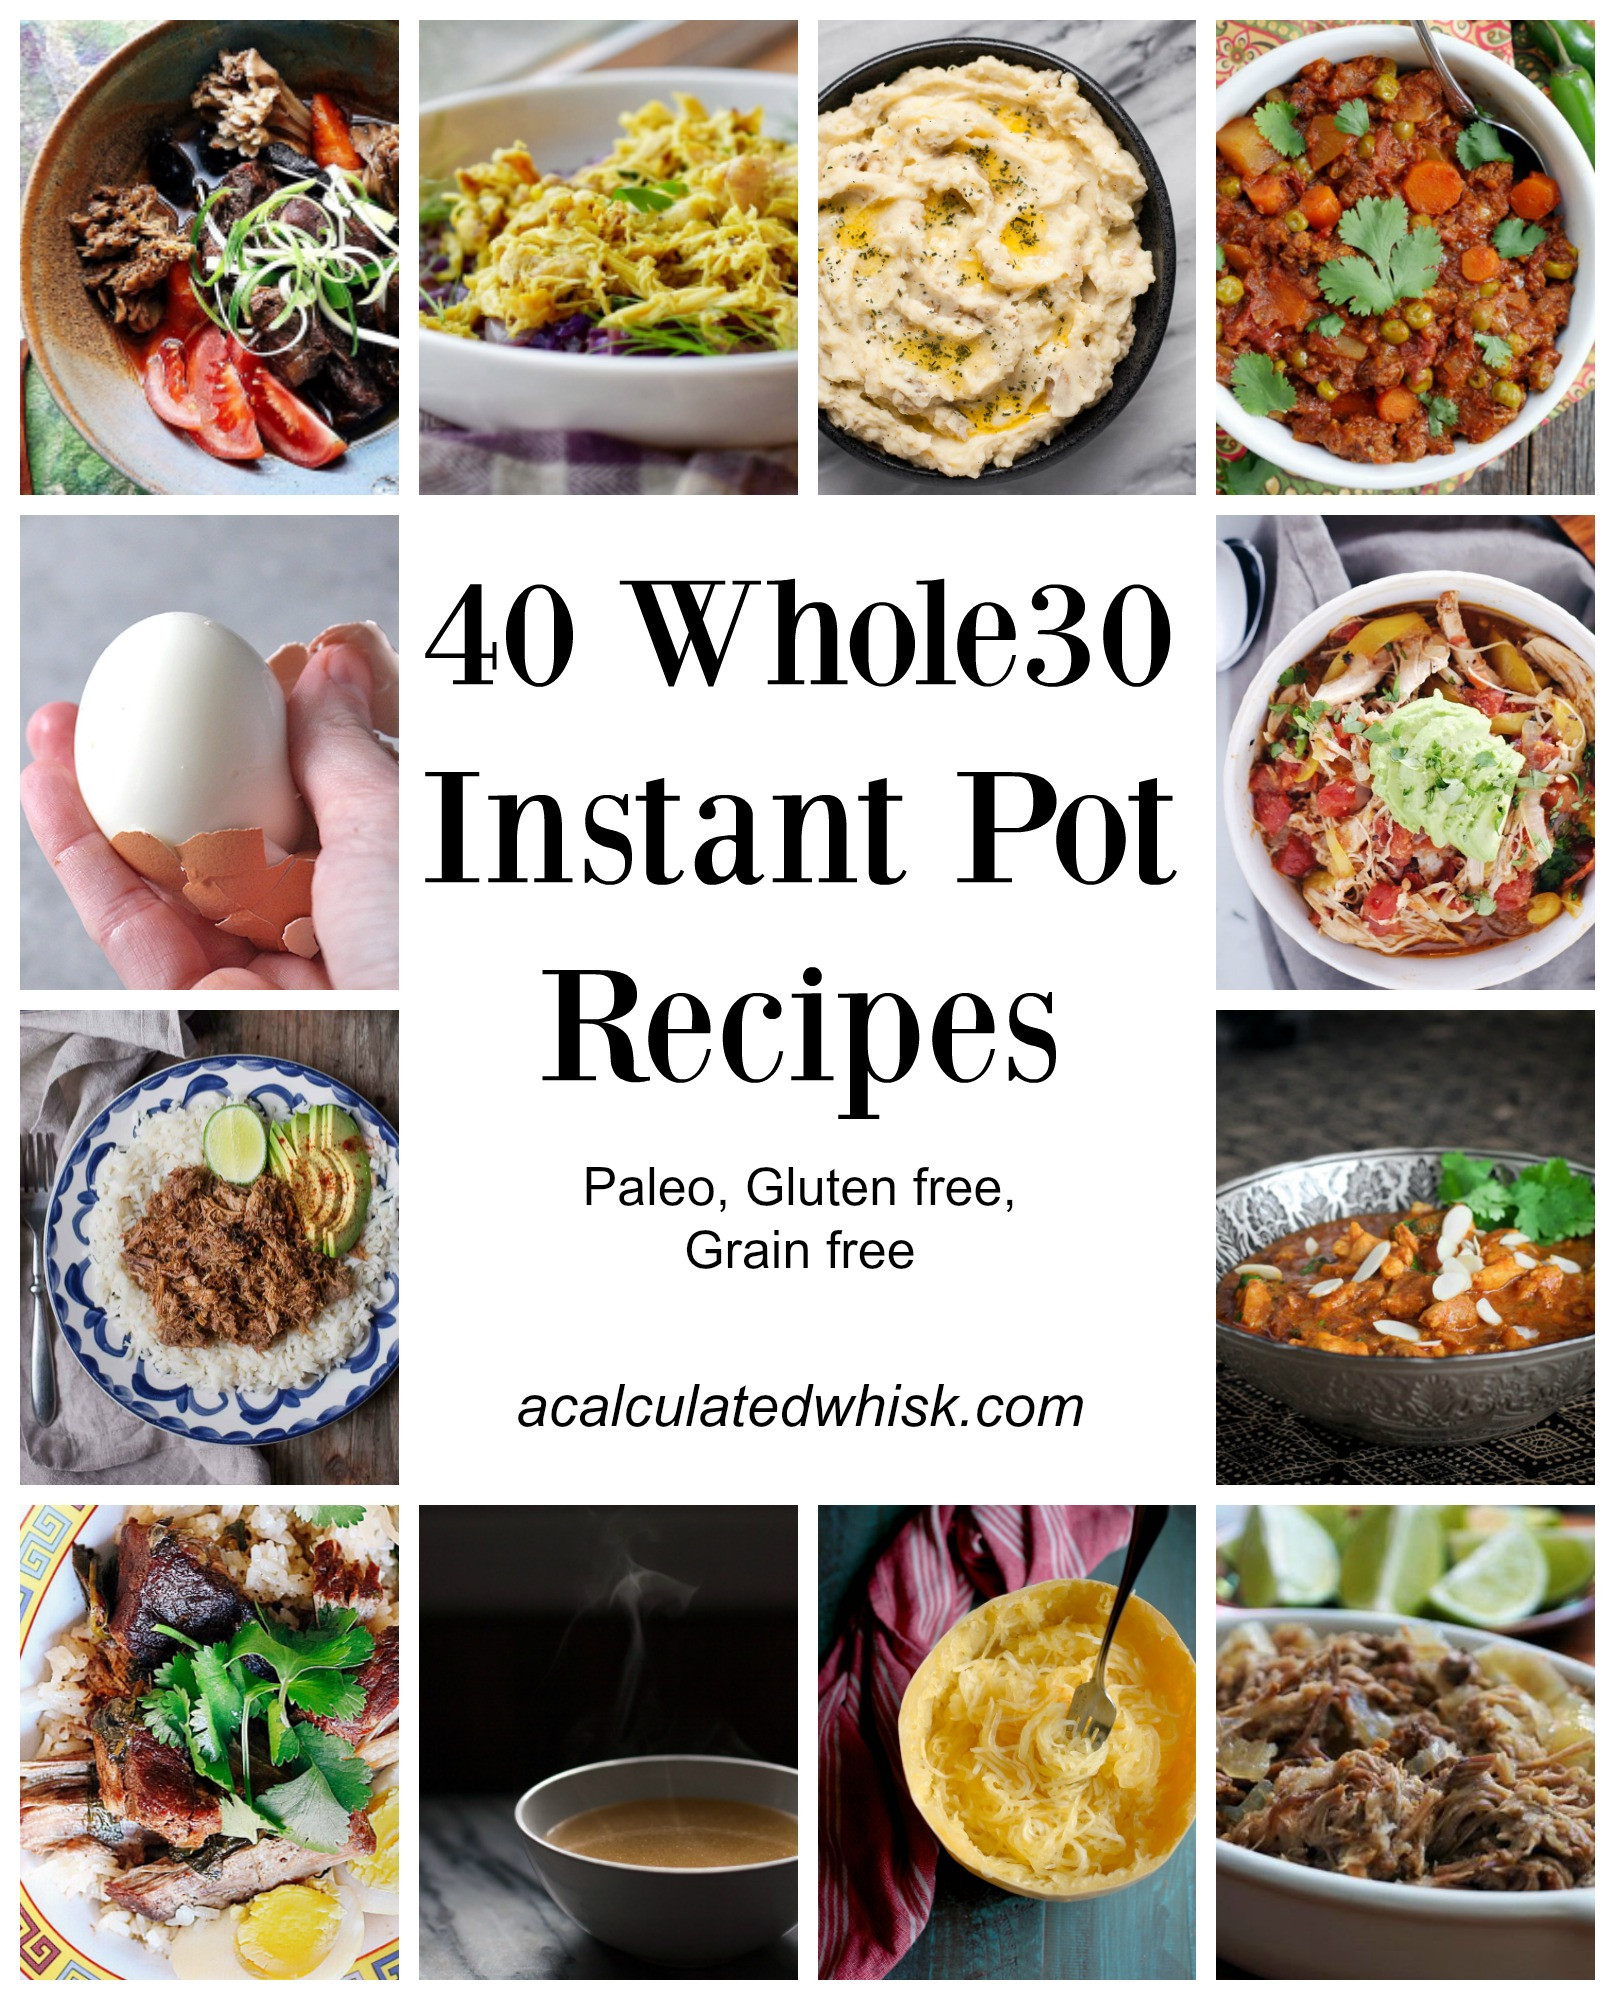 Instant Pot Recipes Paleo  40 Whole30 Instant Pot Recipes A Calculated Whisk